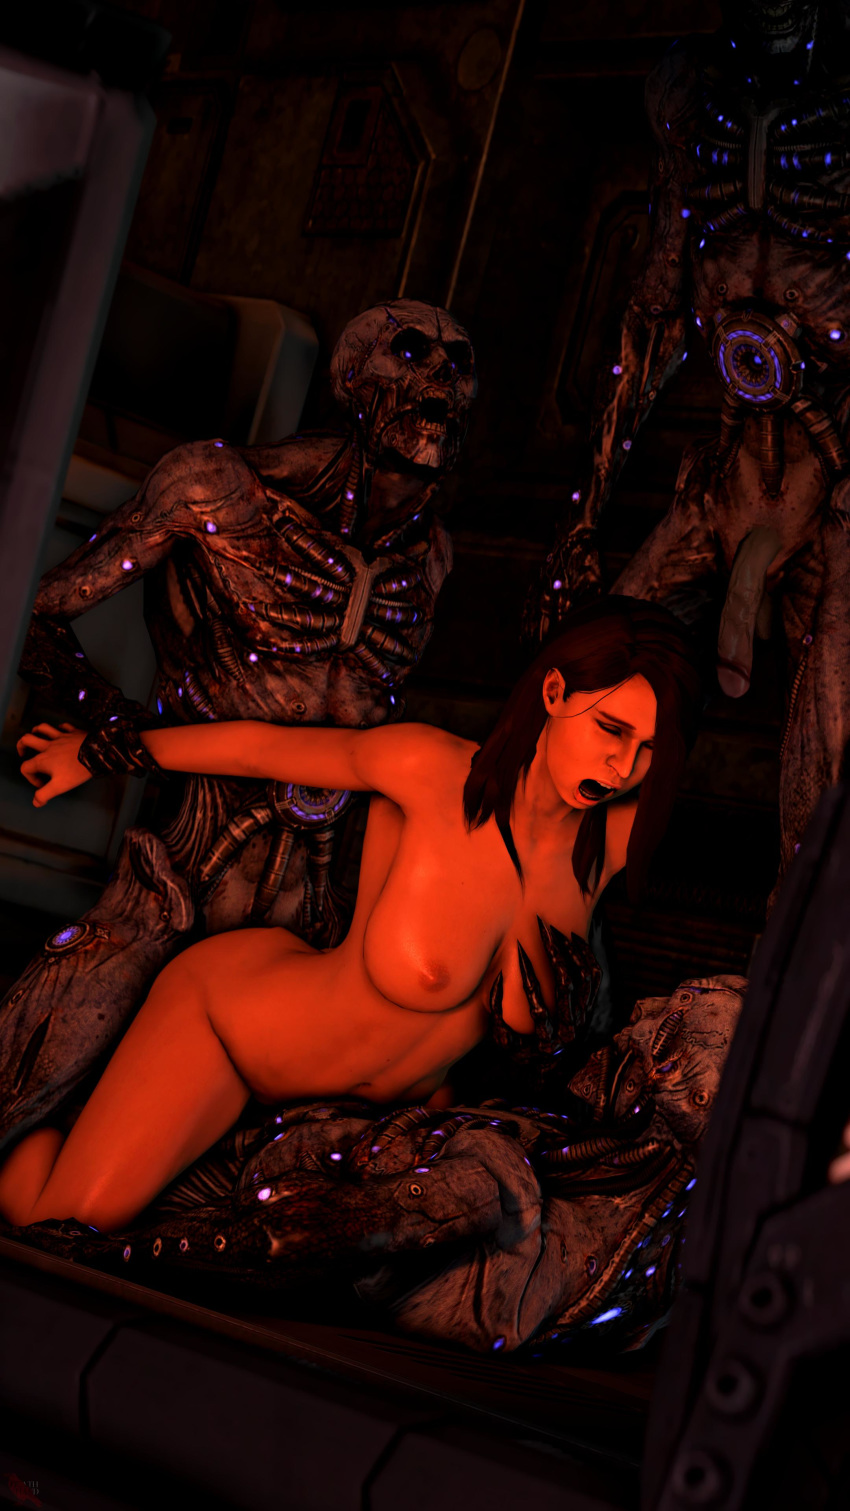 hentai mass effect Naked girls in thigh highs